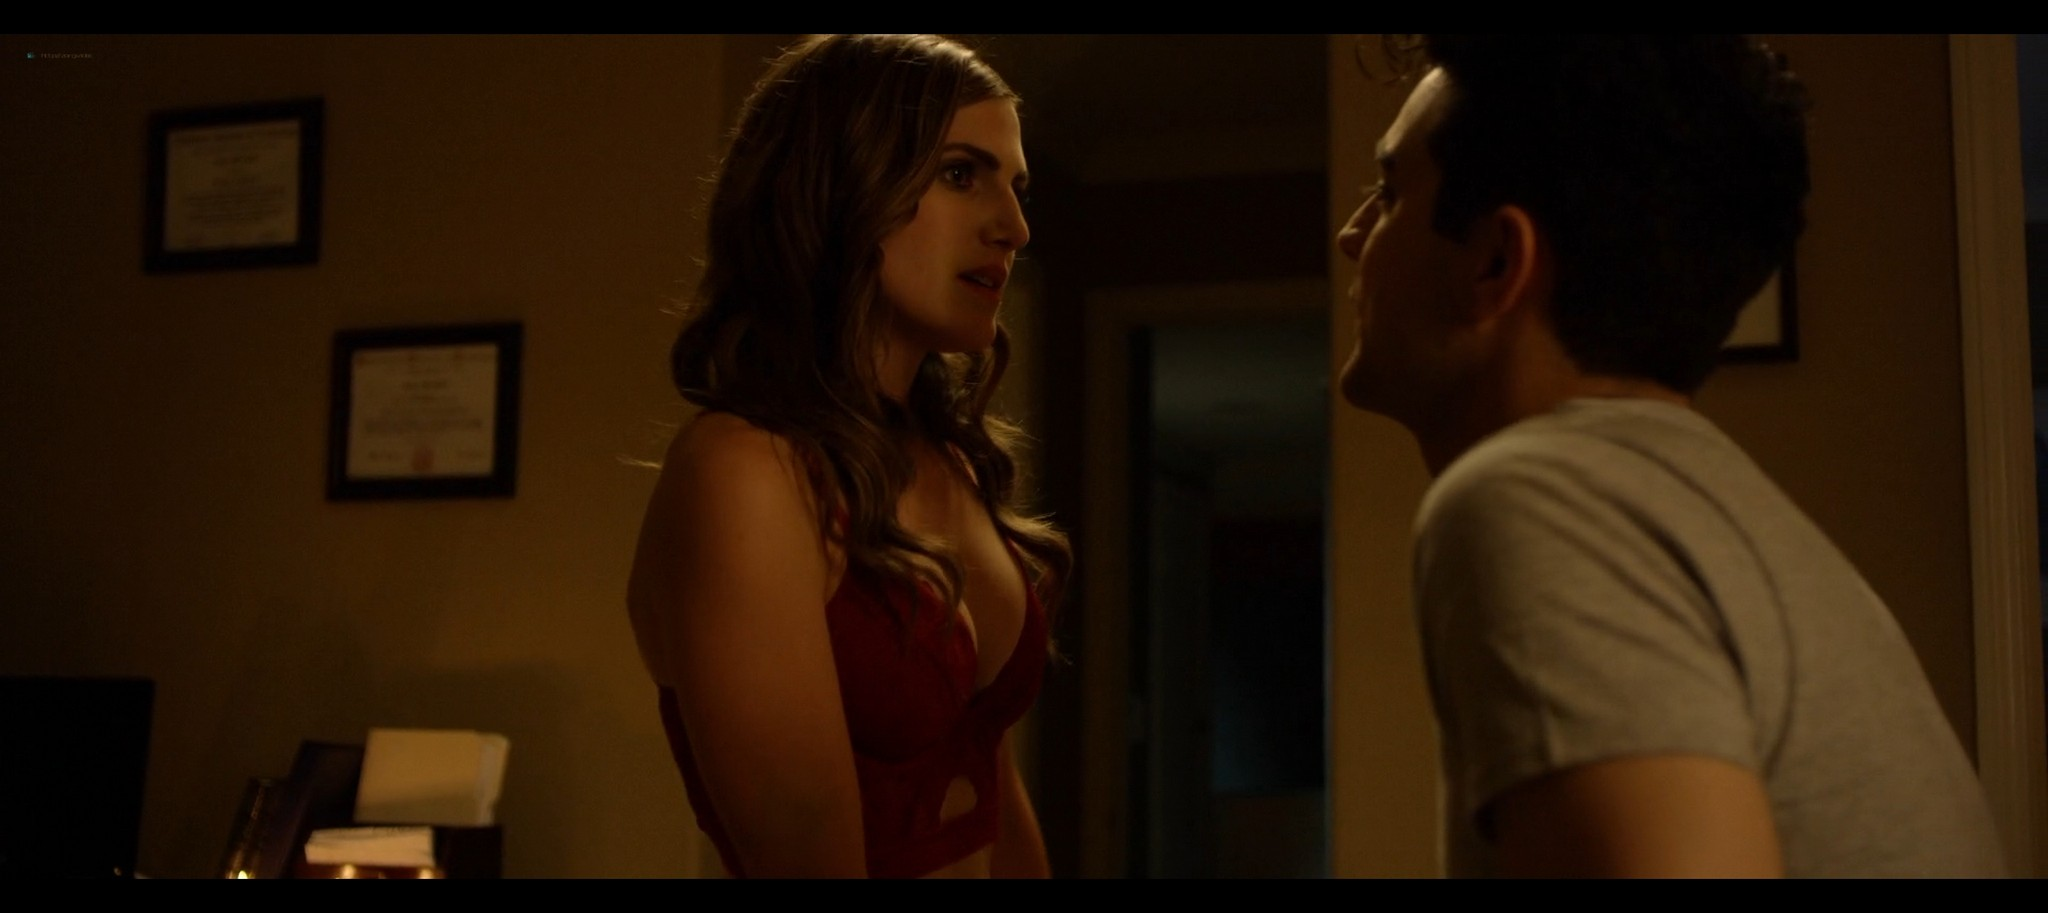 Sophie Kargman hot and sexy in lingerie The Believer 2021 1080p Web 6